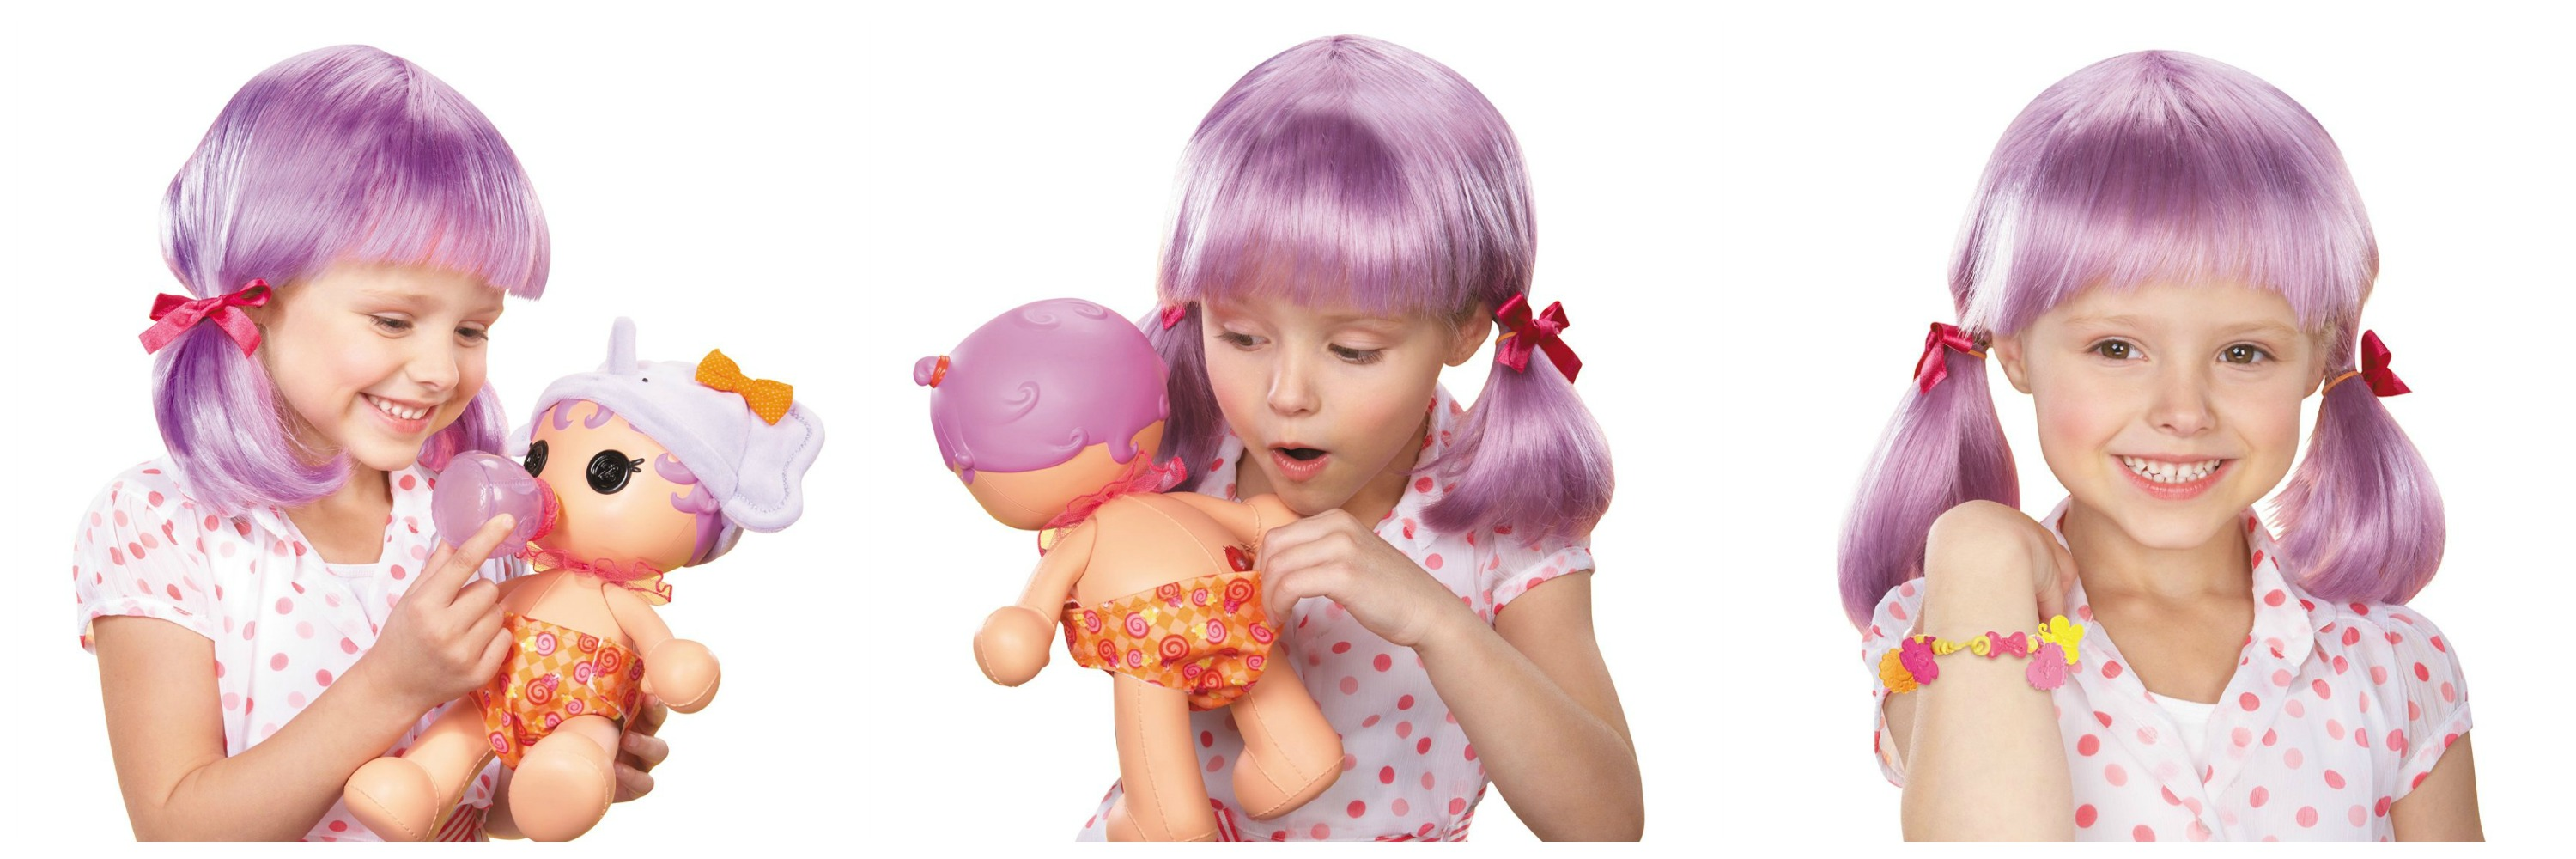 A doll that poops charms – what were they thinking?